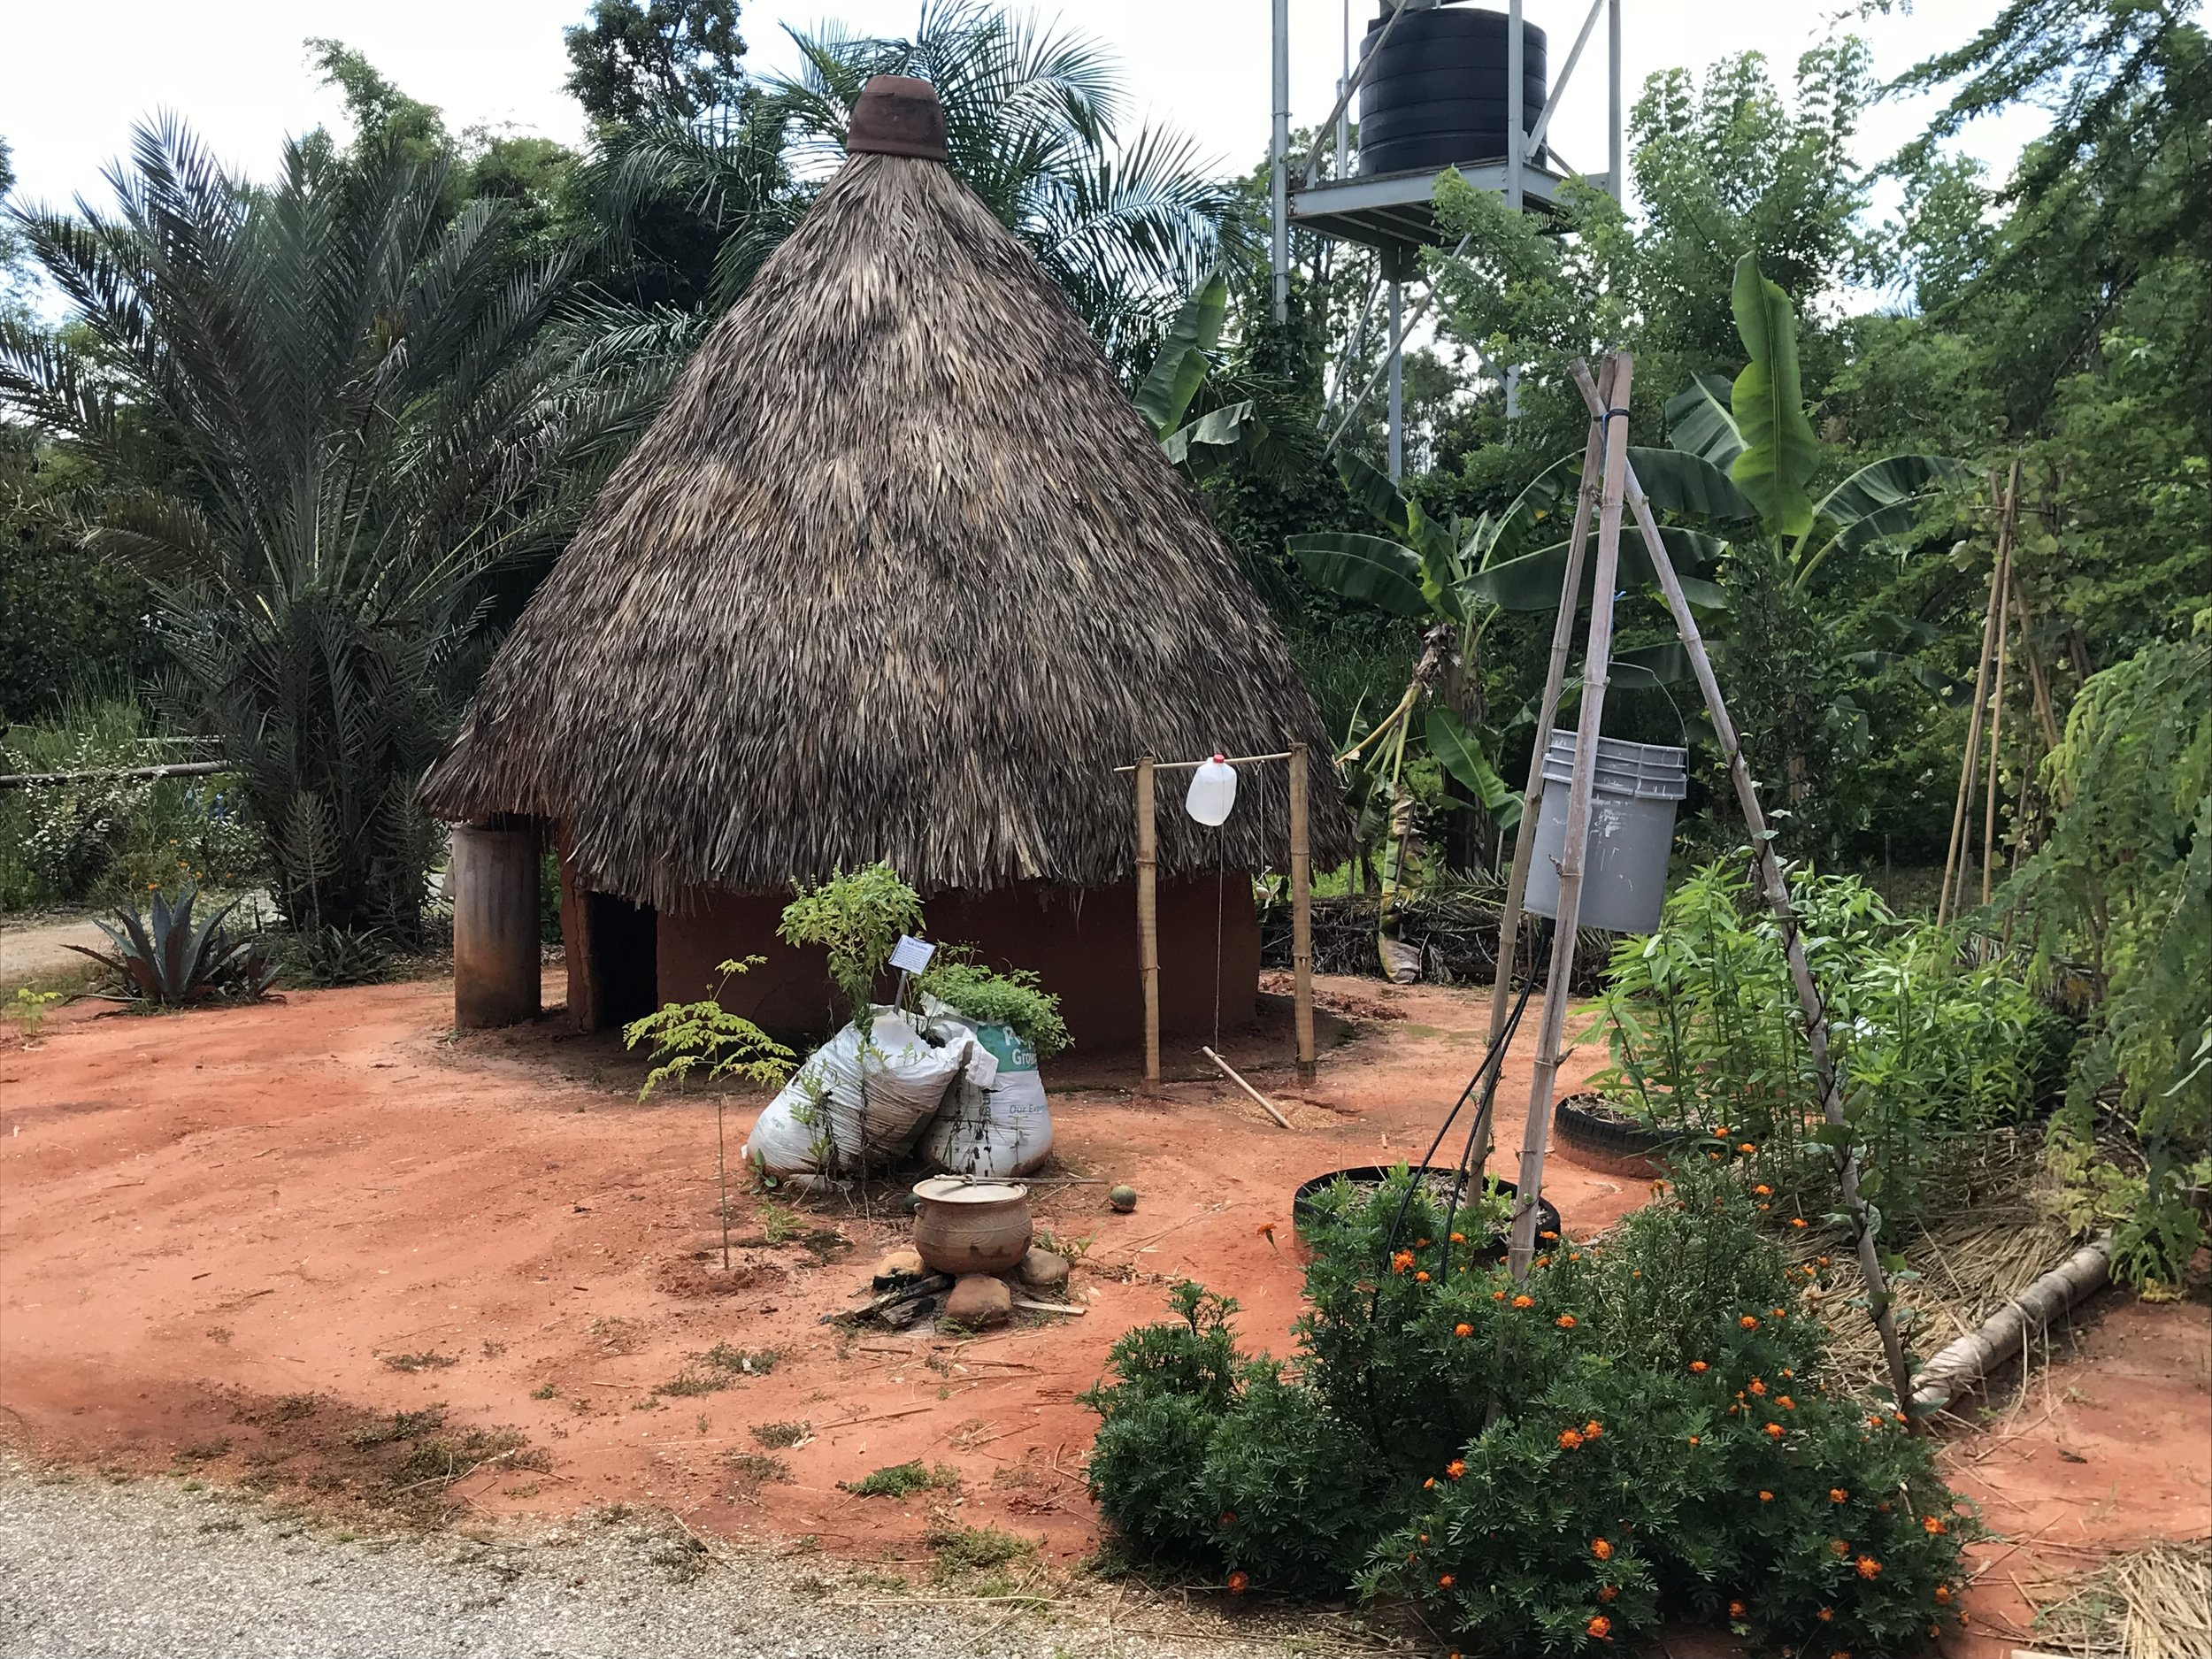 This is another type of dwelling built on the farm using materials grown and harvesting there.